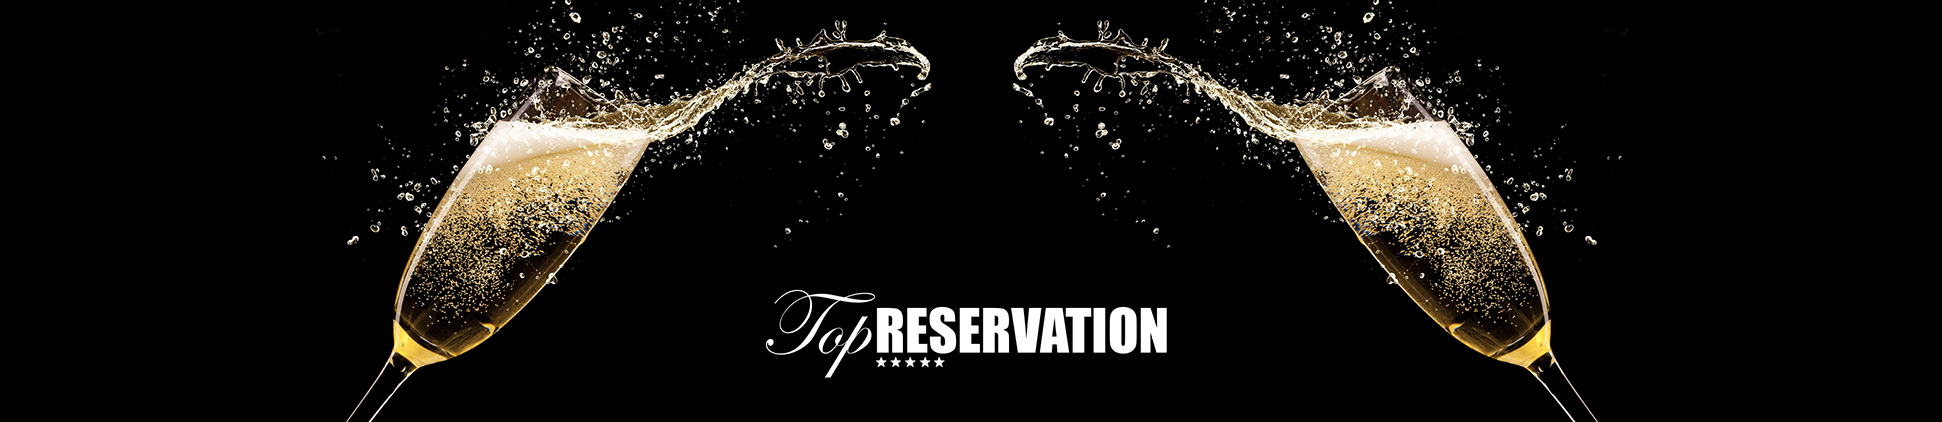 Top Reservation: Locali milano